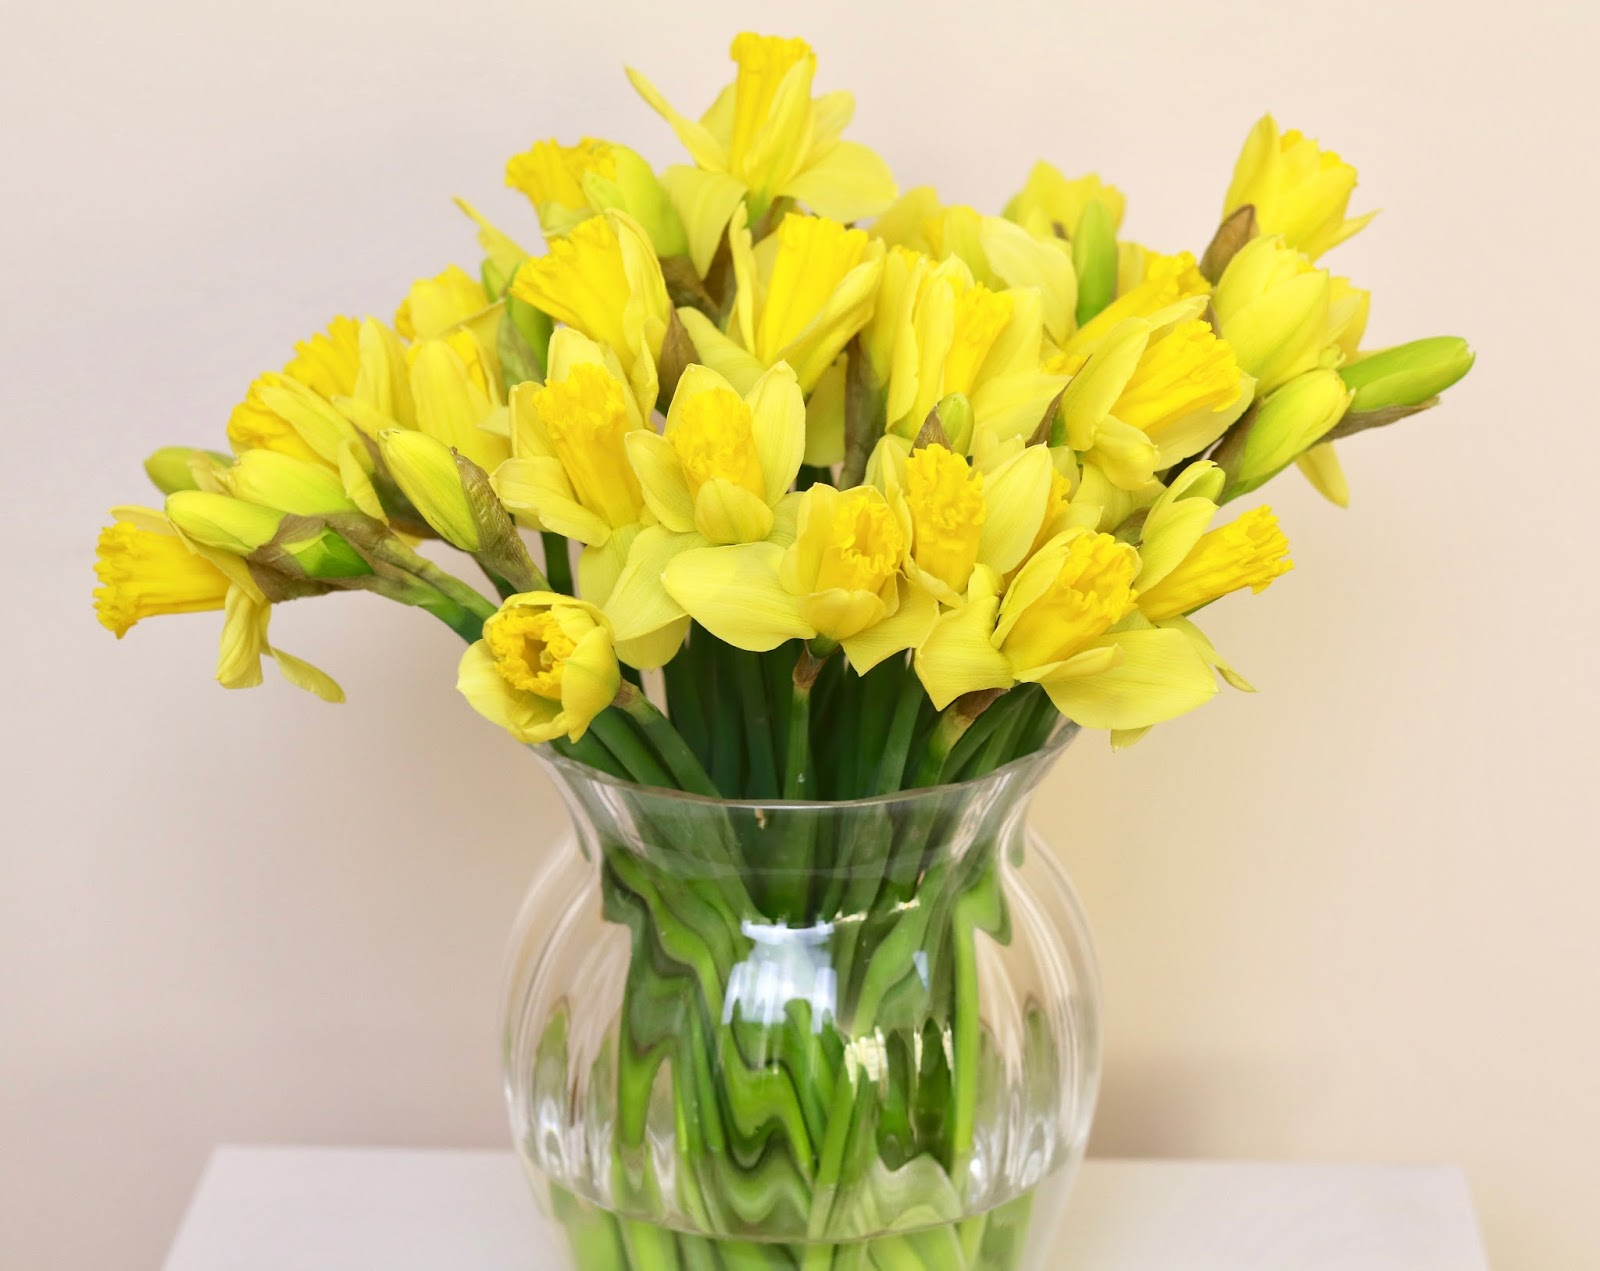 Daffodils | The Lifestyle Archives